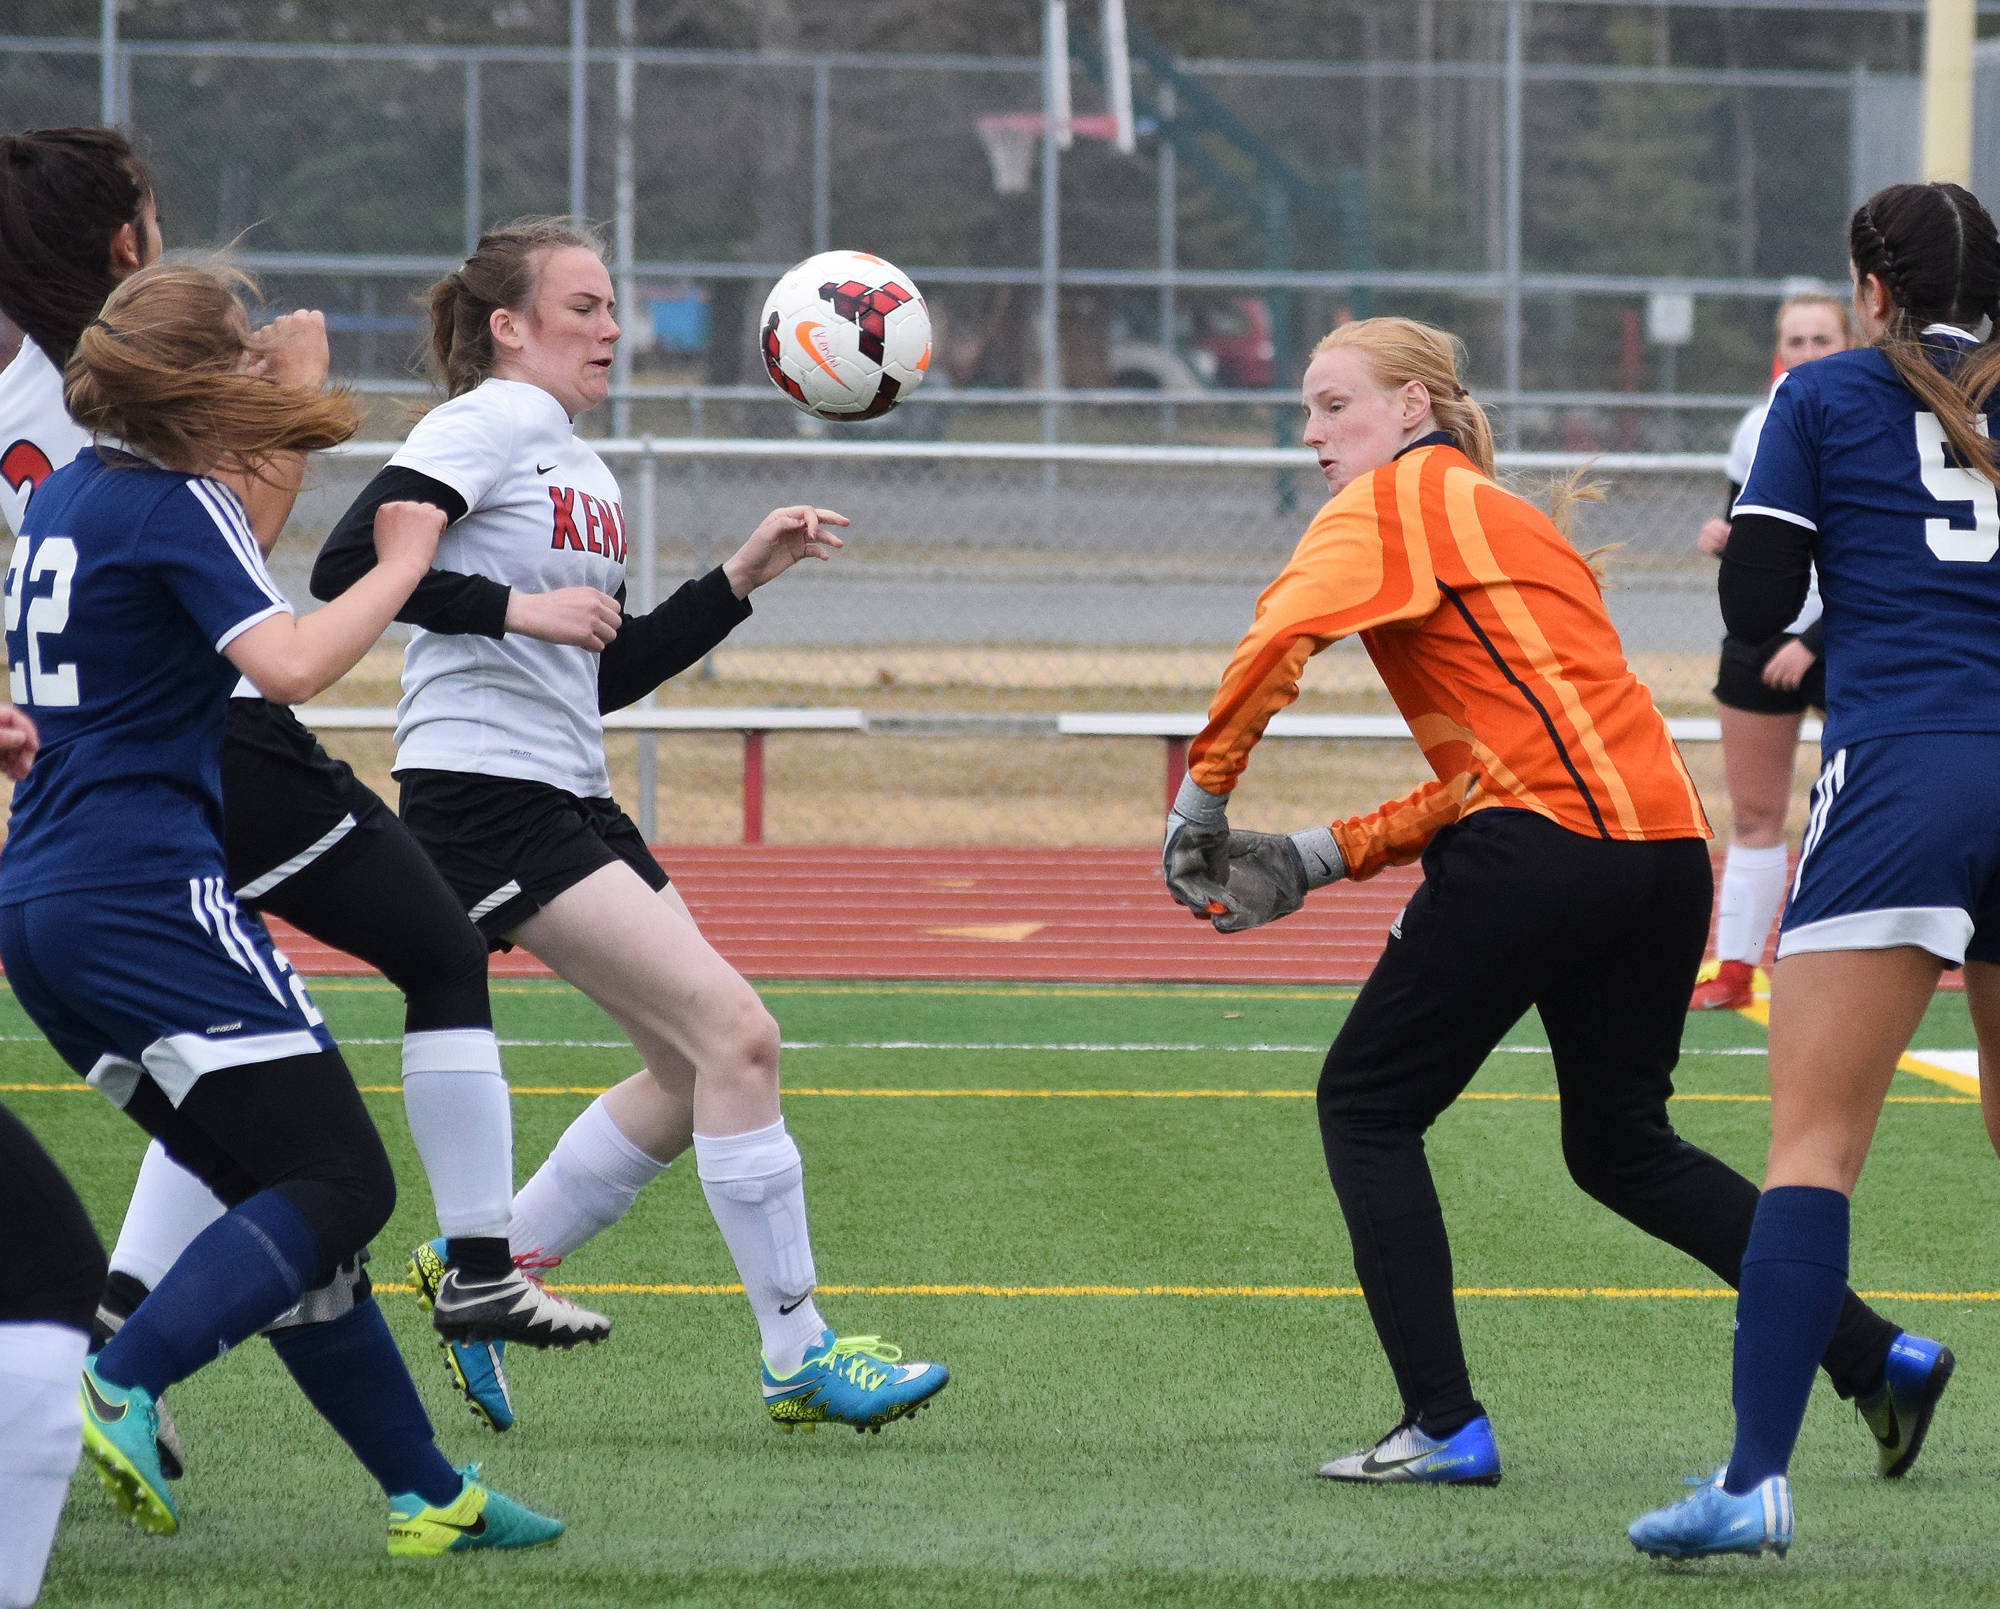 Homer goalkeeper Kelli Bishop (in orange) knocks the ball away on a Kenai Central rush Tuesday evening at Ed Hollier Field in Kenai. (Photo by Joey Klecka/Peninsula Clarion)